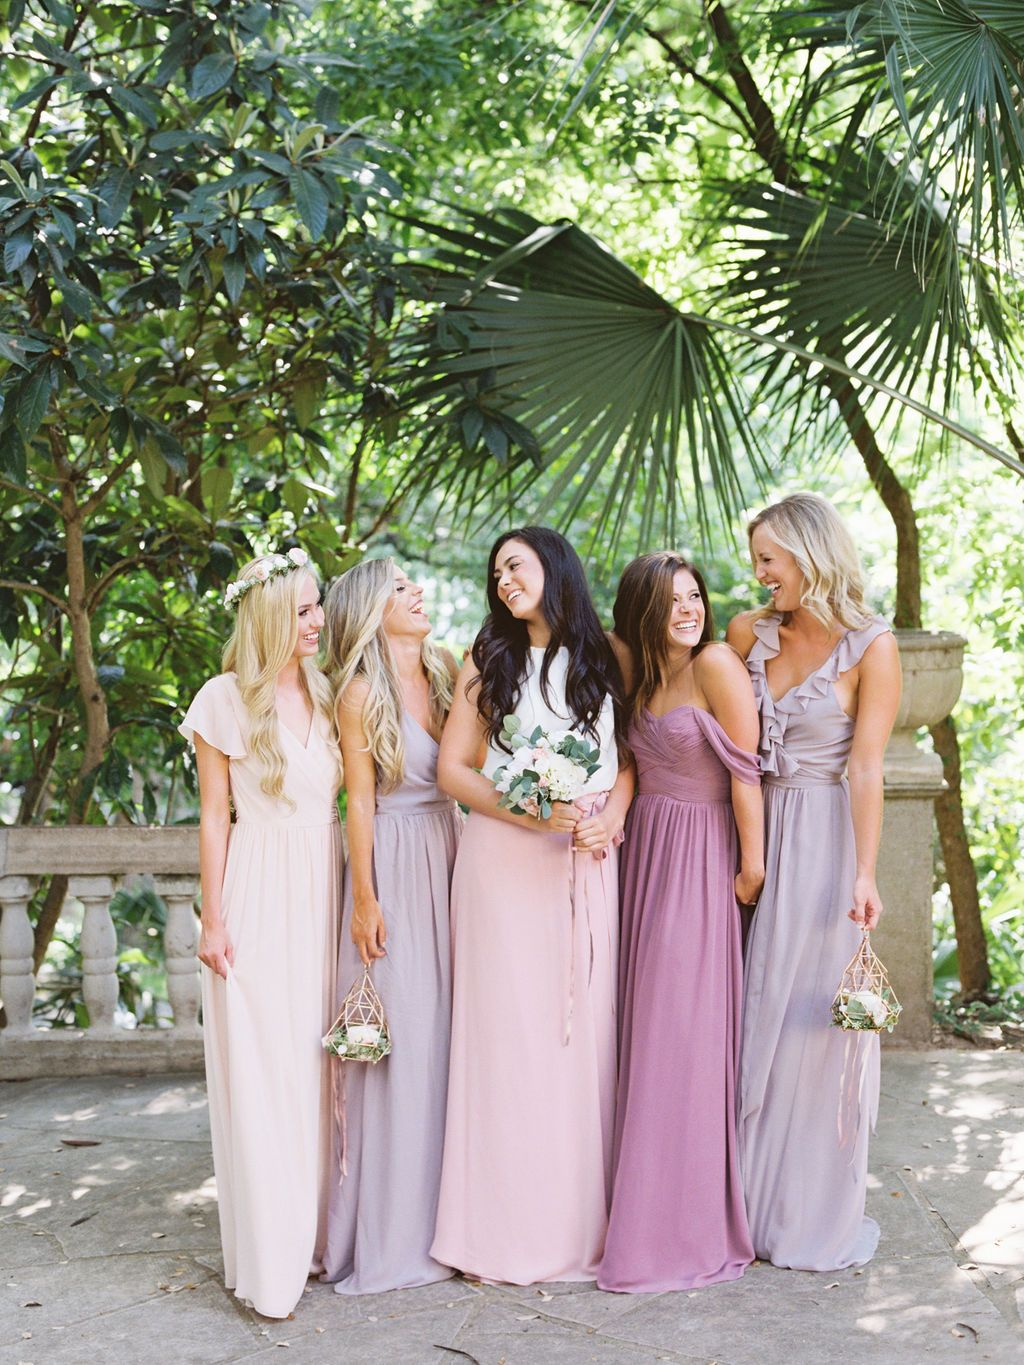 Bridesmaid Dresses And Separates From The Leading Ecommerce Bridesmaid Dress Company Try Any Style With Images Bridesmaid Dresses Separates Bridesmaid Dresses Bridesmaid